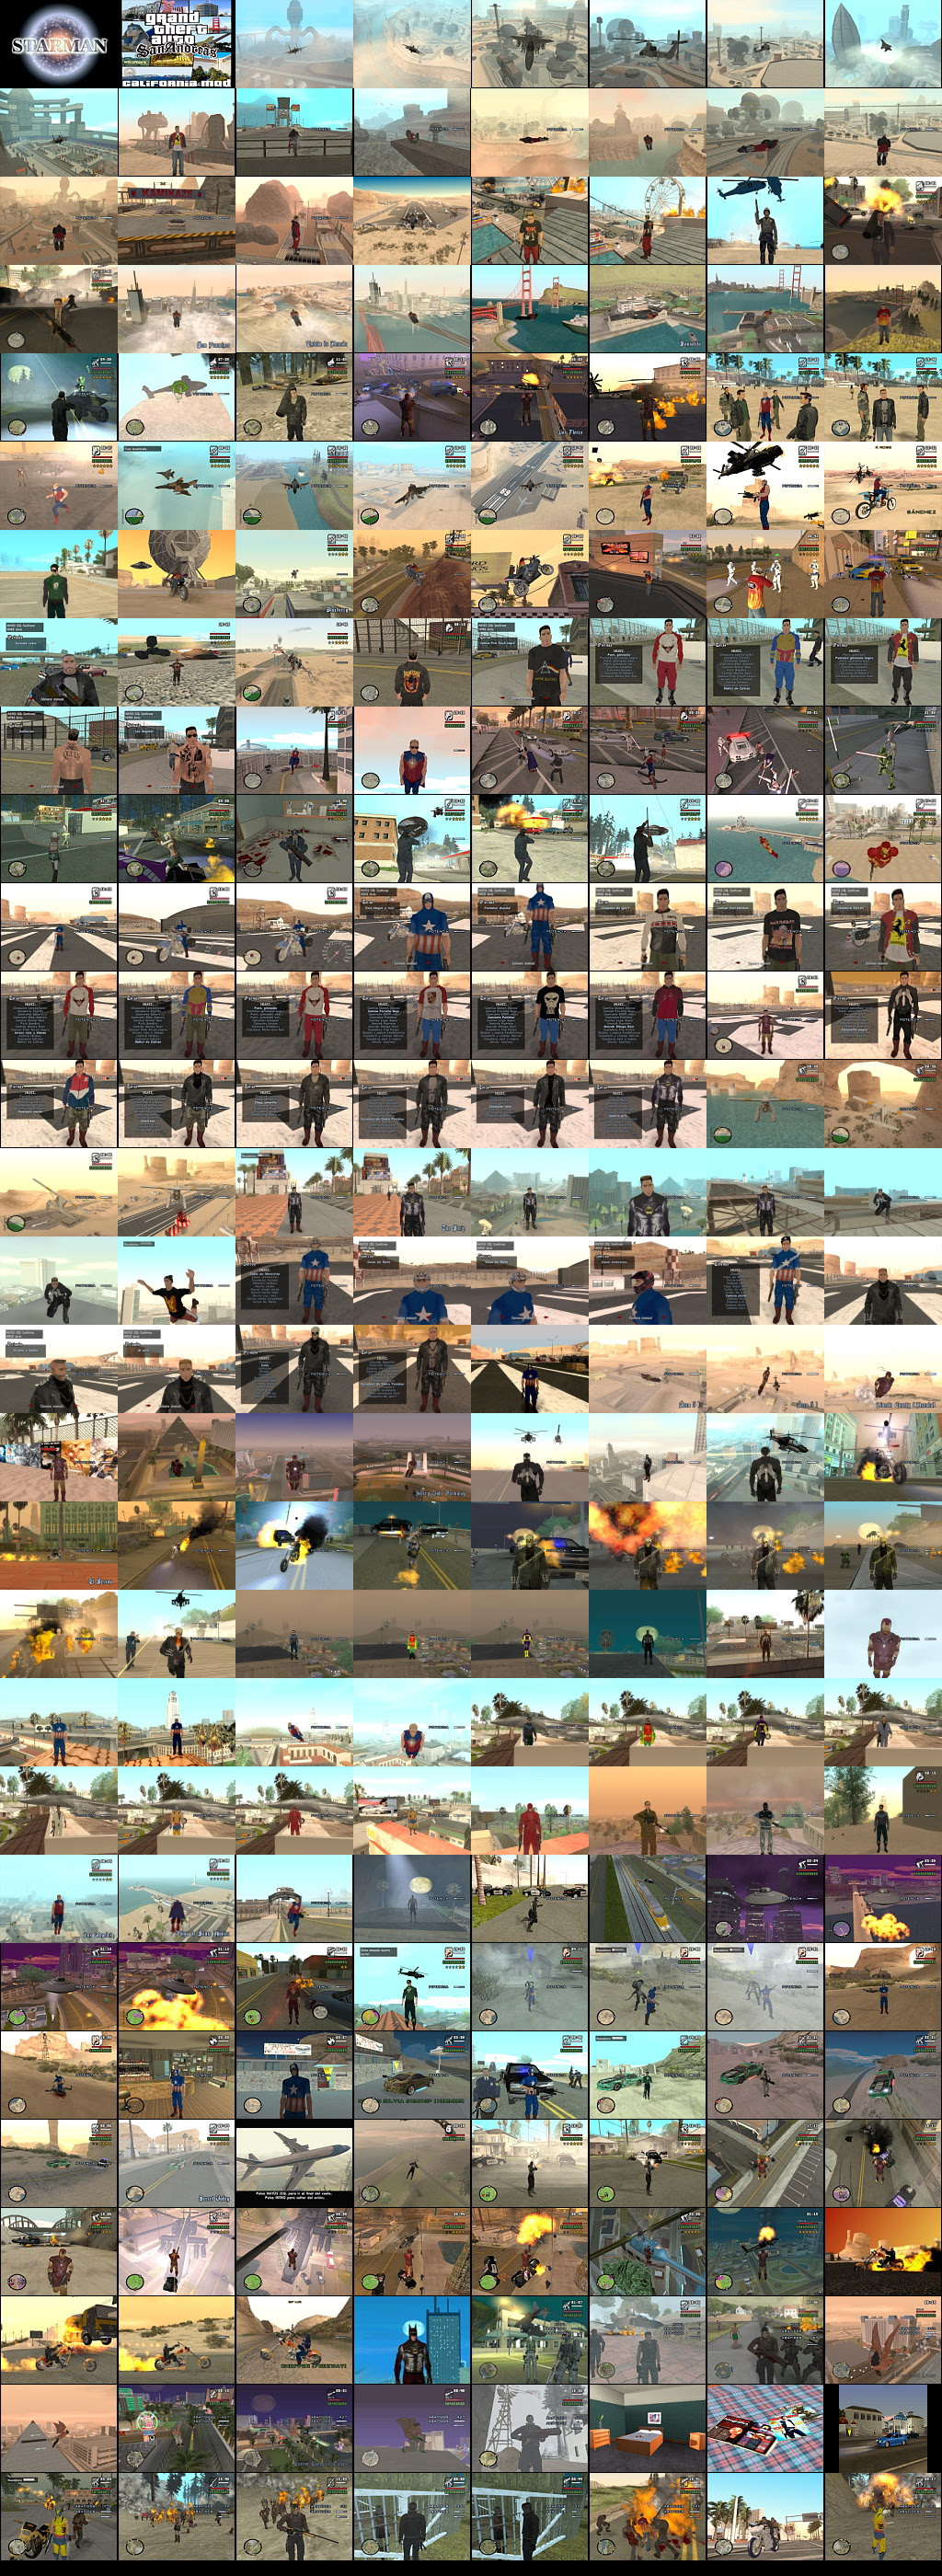 click for full size image of  thumbnails from california megamod 1.5